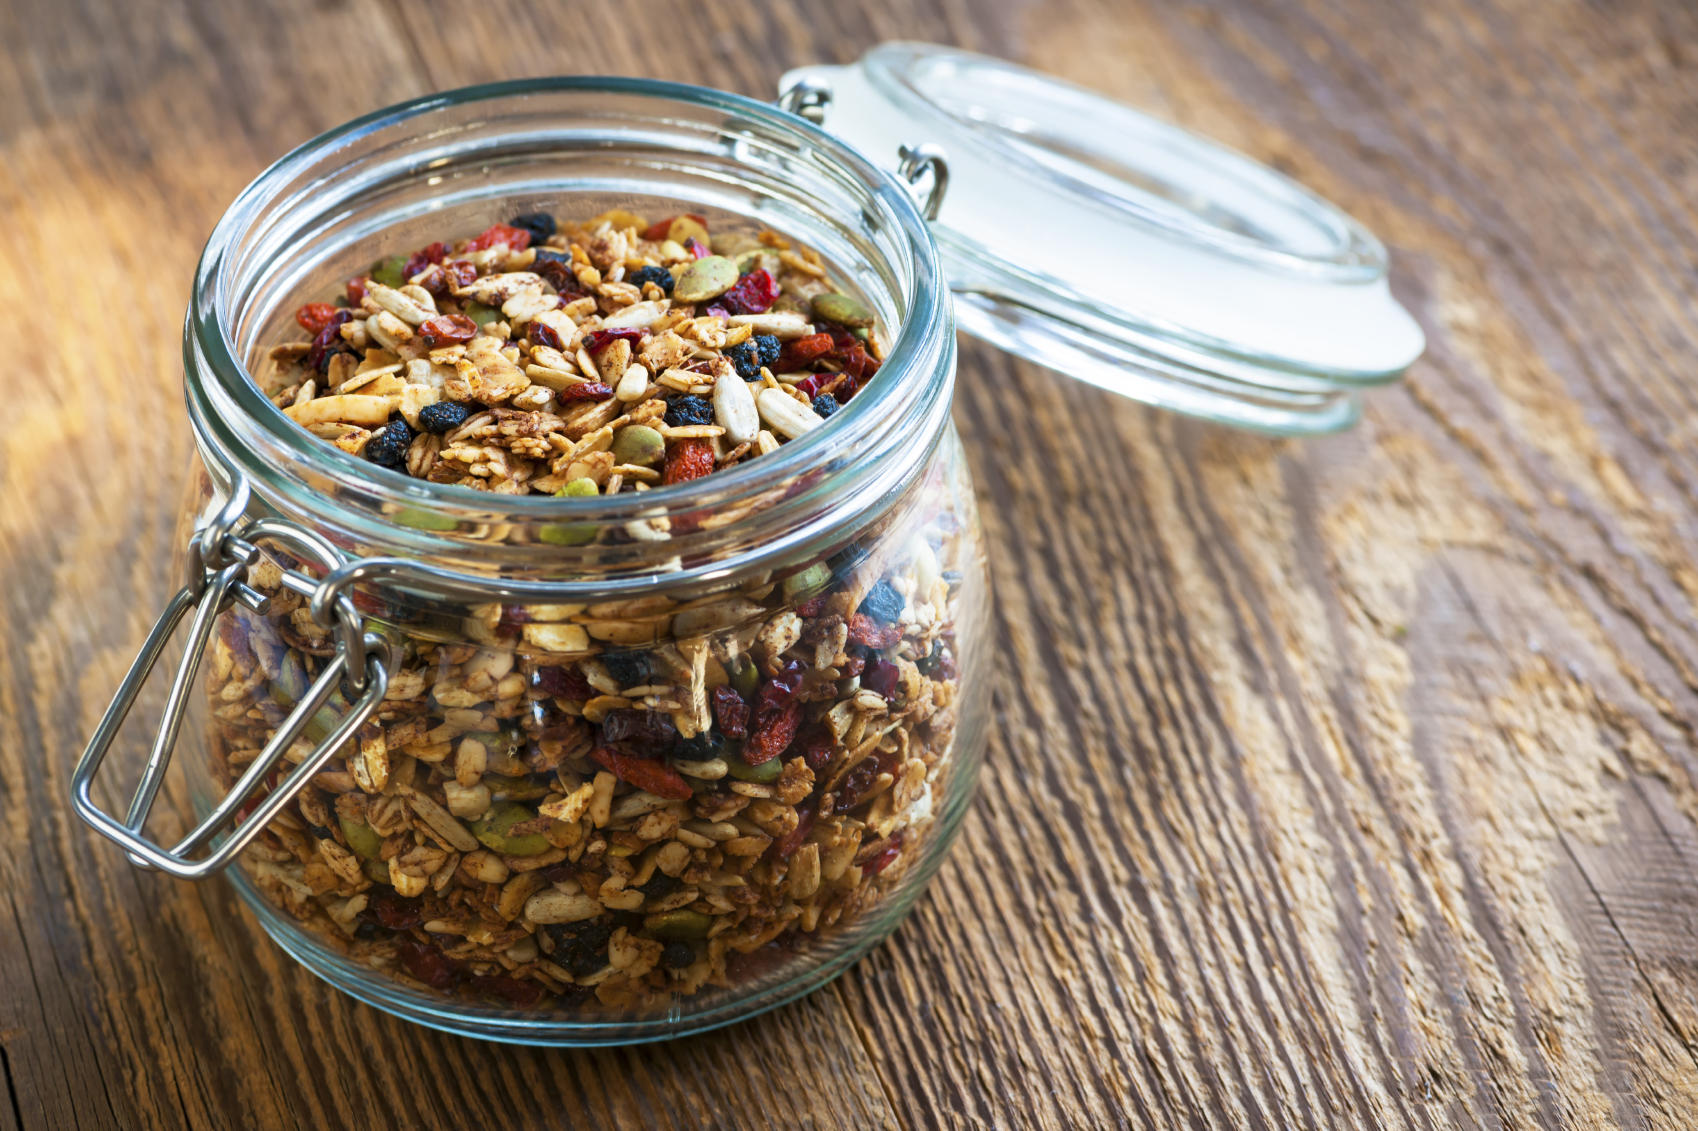 Try This Delicious Homemade Granola for Breakfast